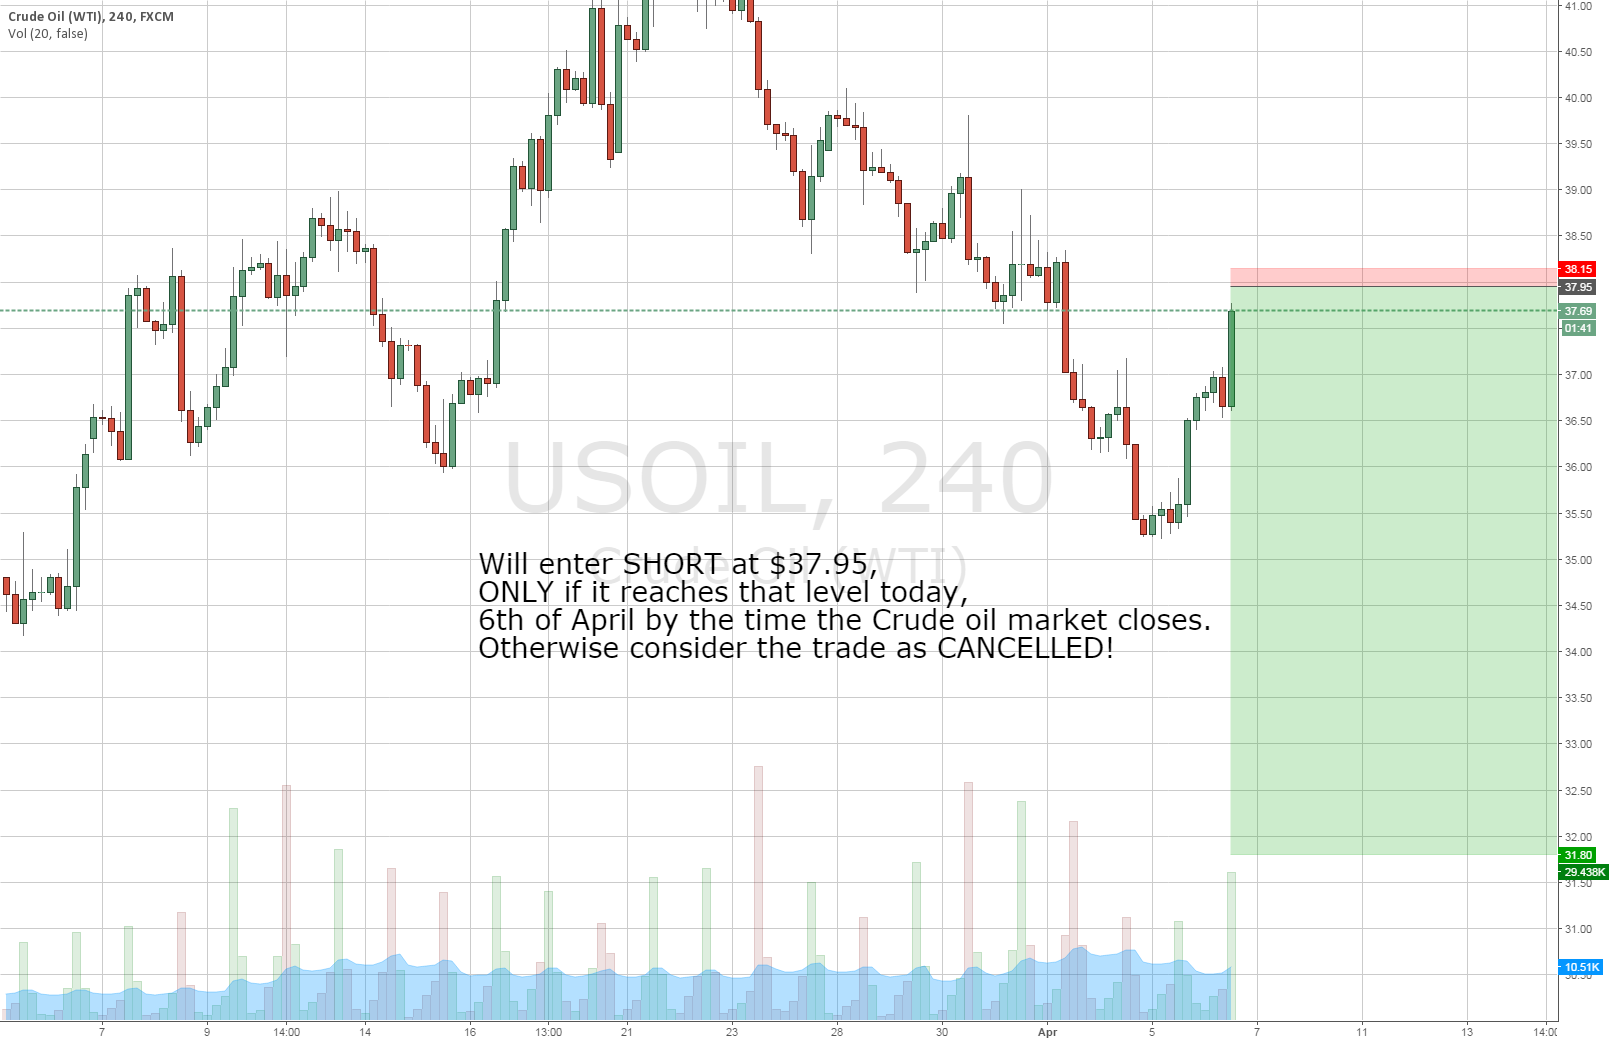 Shorting USOIL at $37.95 (See the chart for details)